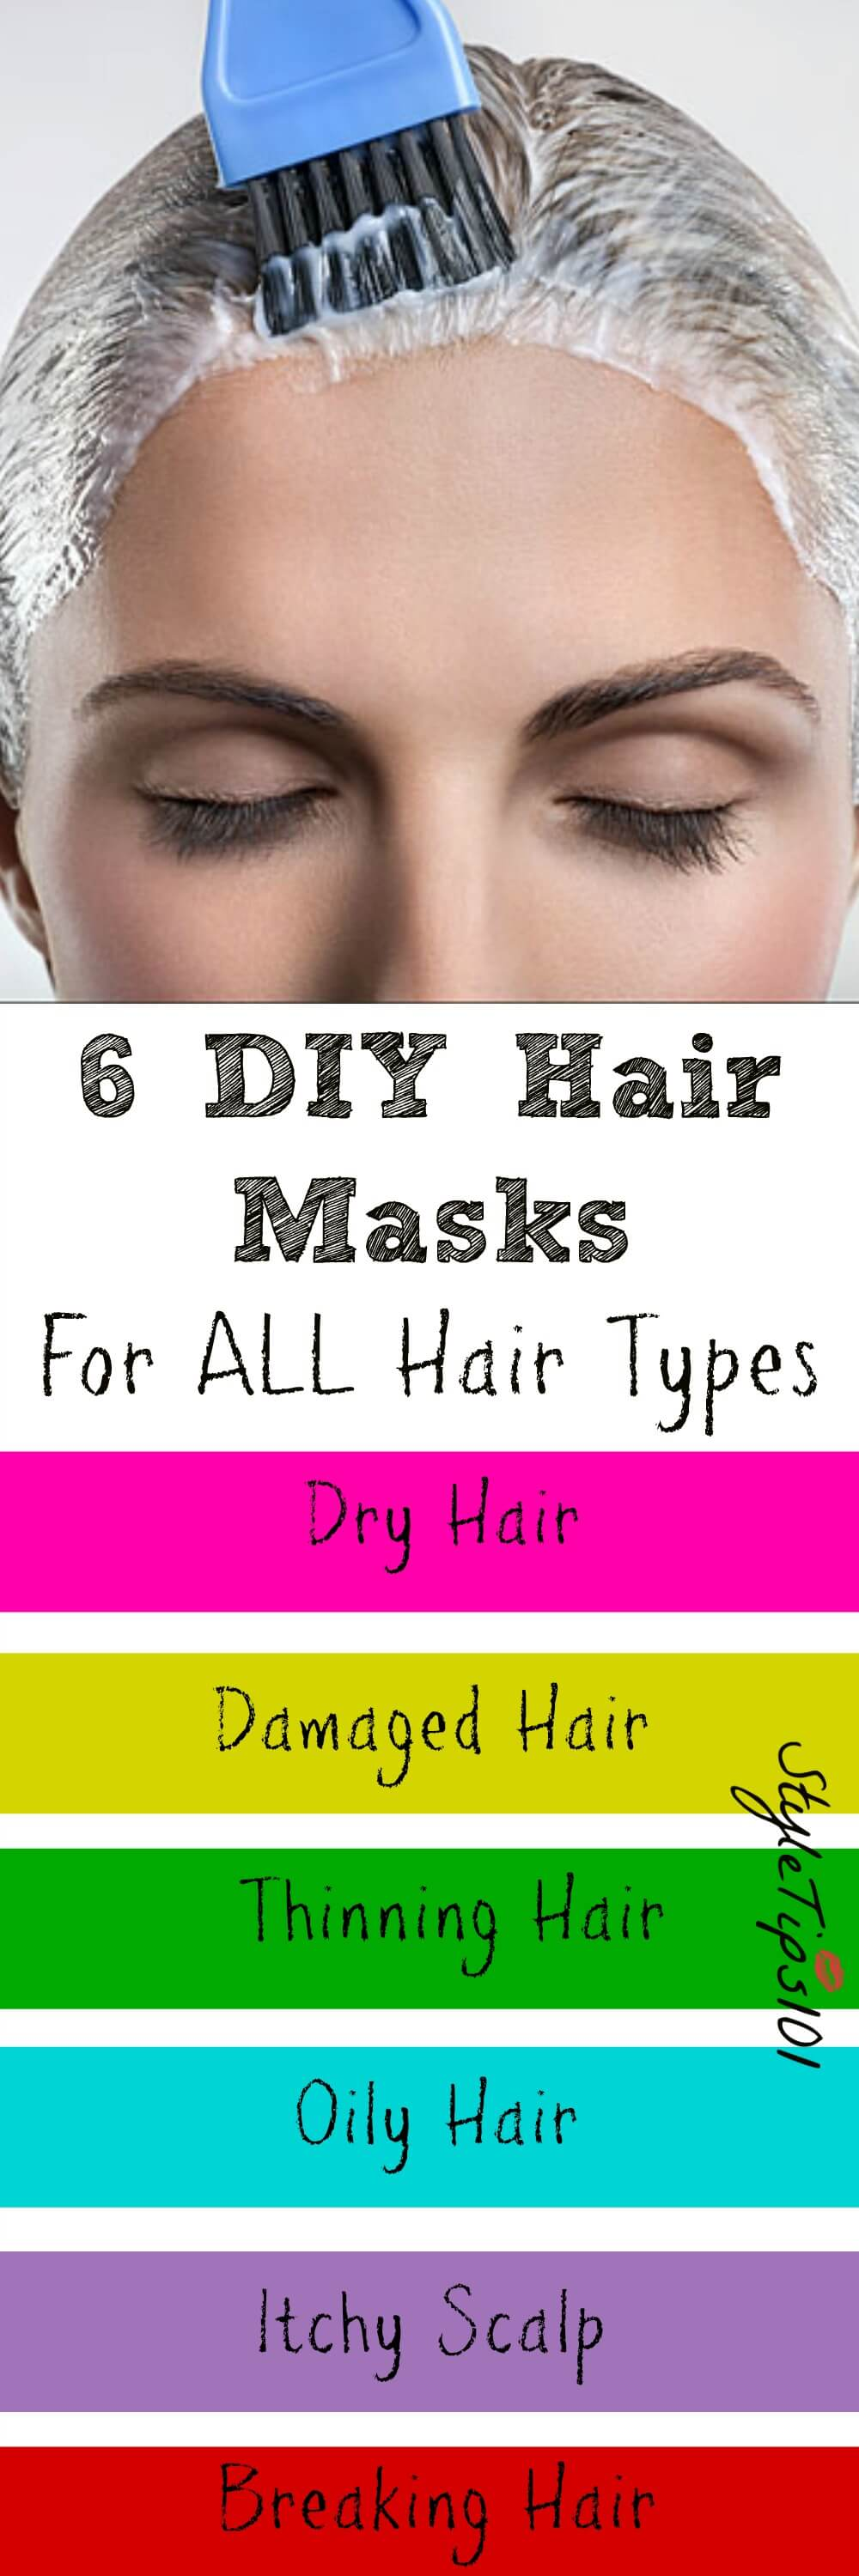 Hair masks for all type of scalps